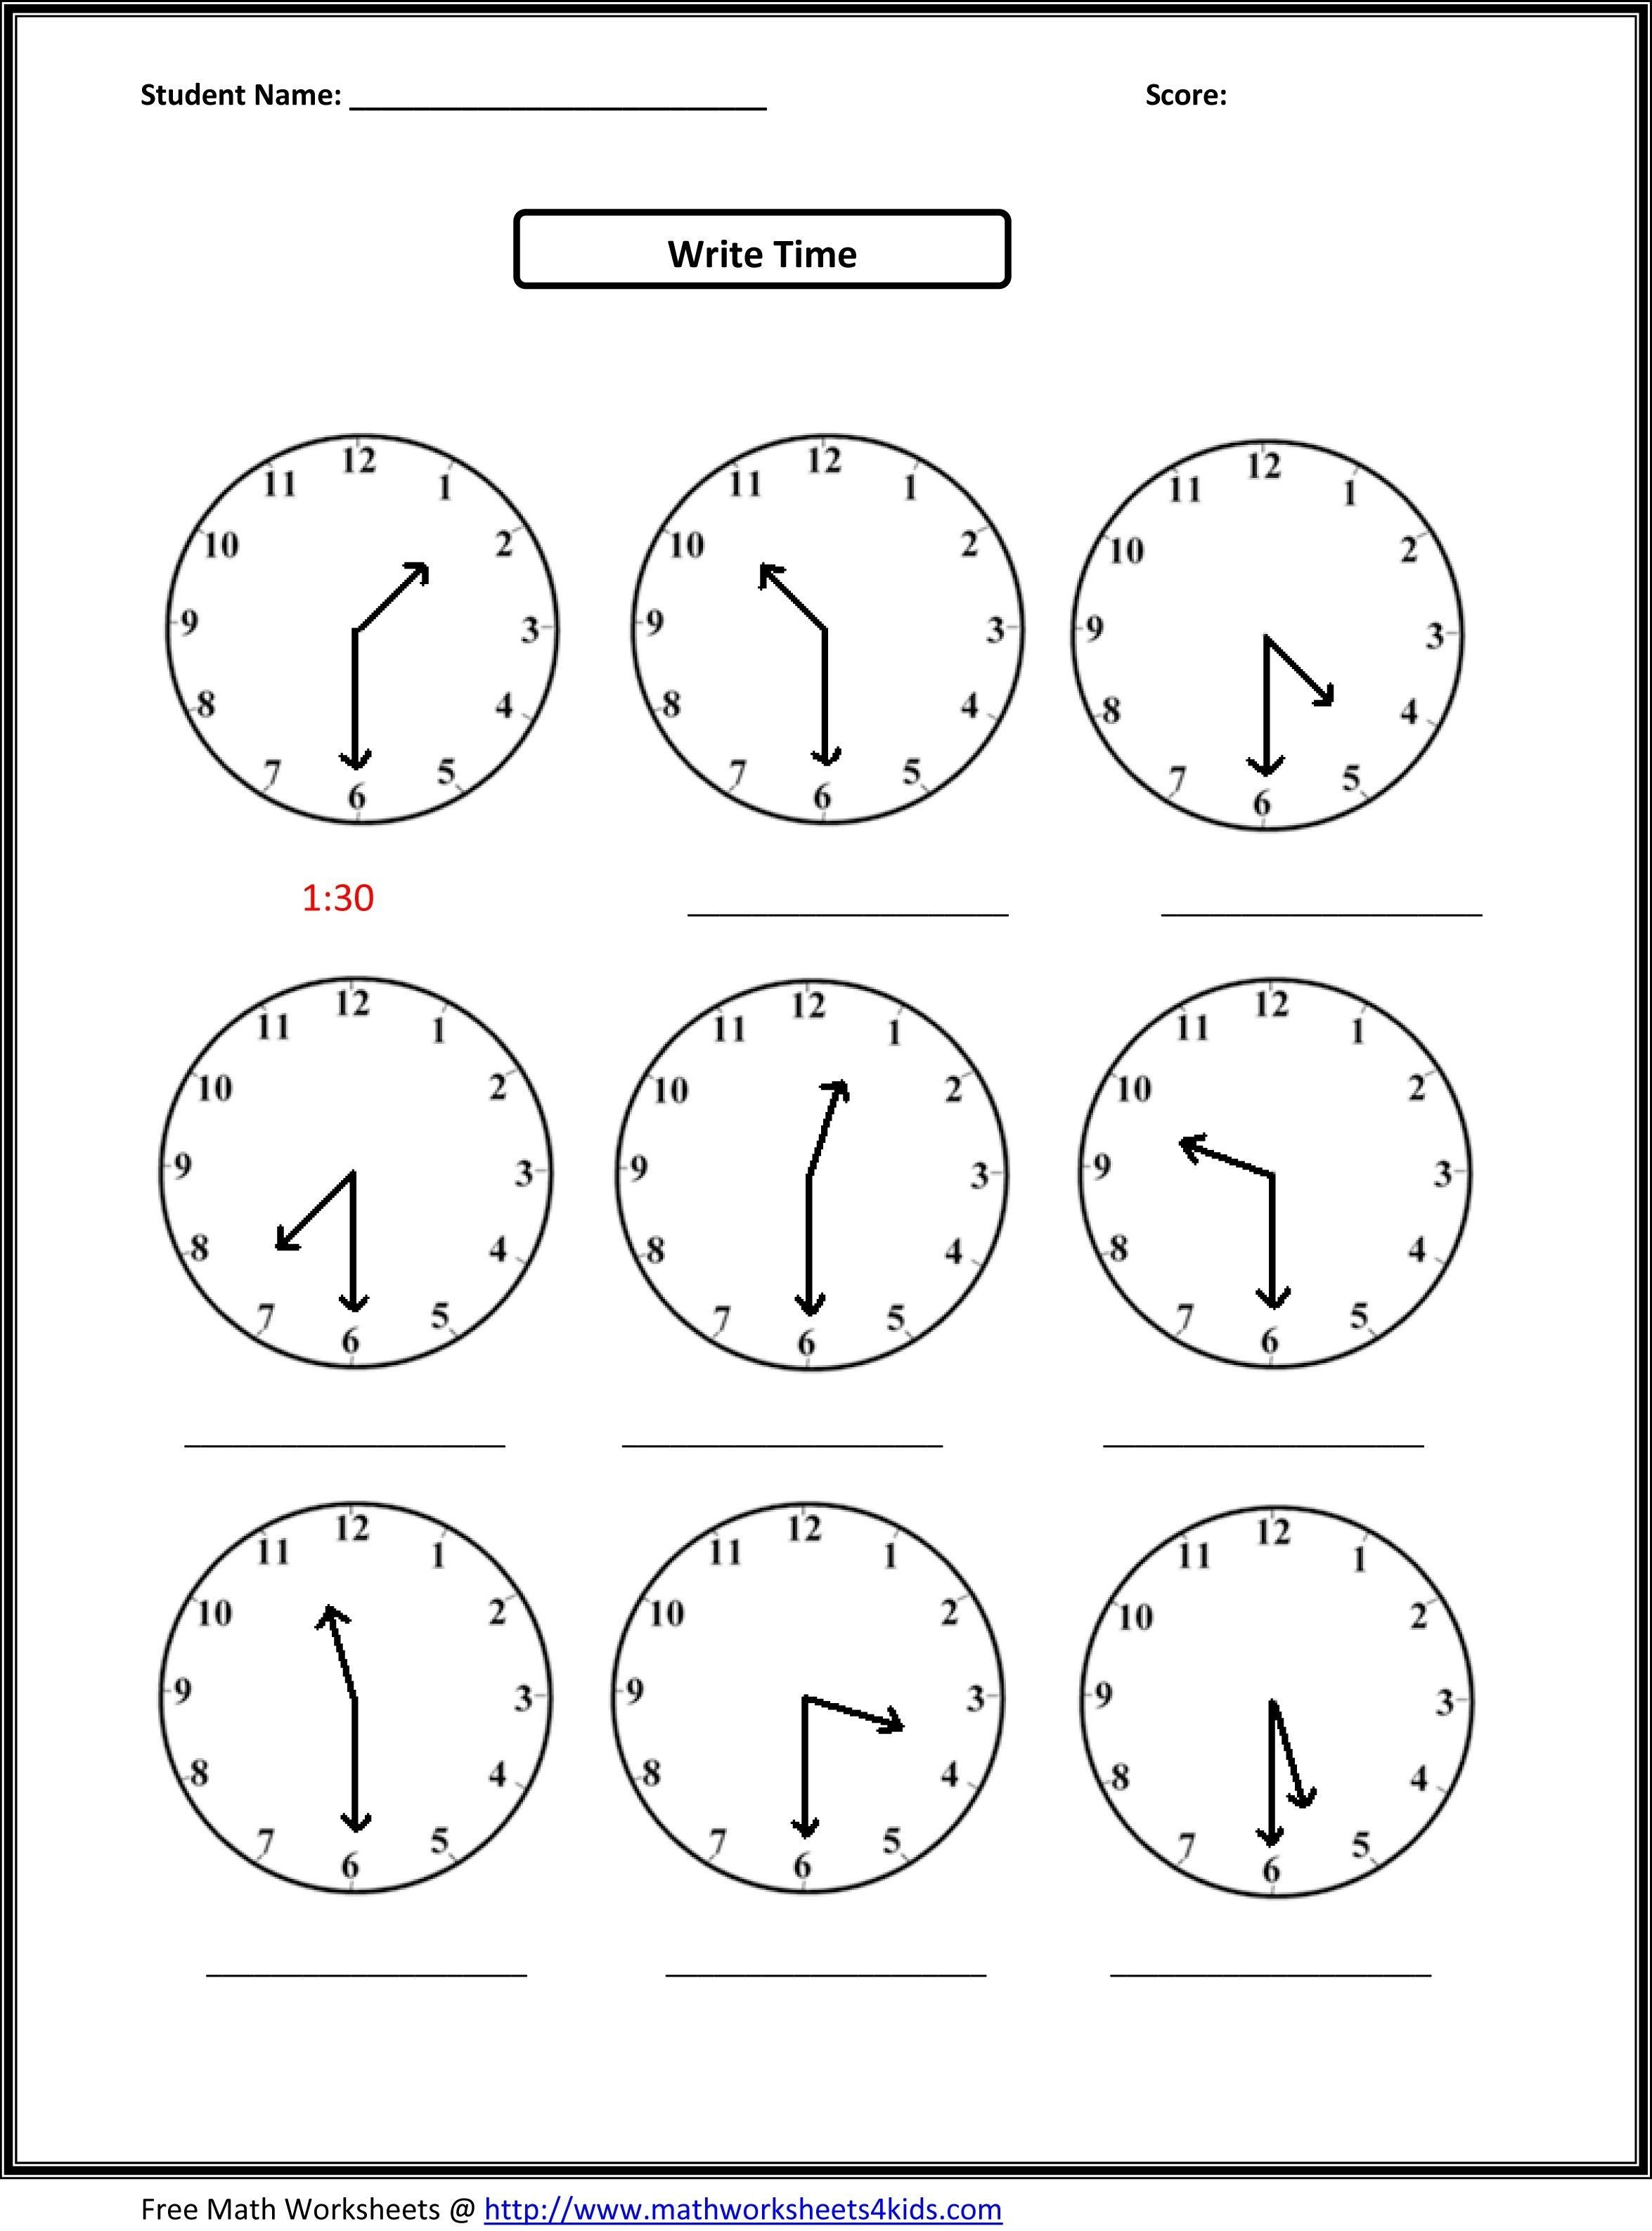 Telling Time Worksheets Ks3 New Clock Grade 3 Free Maths Printables - Free Printable Telling Time Worksheets